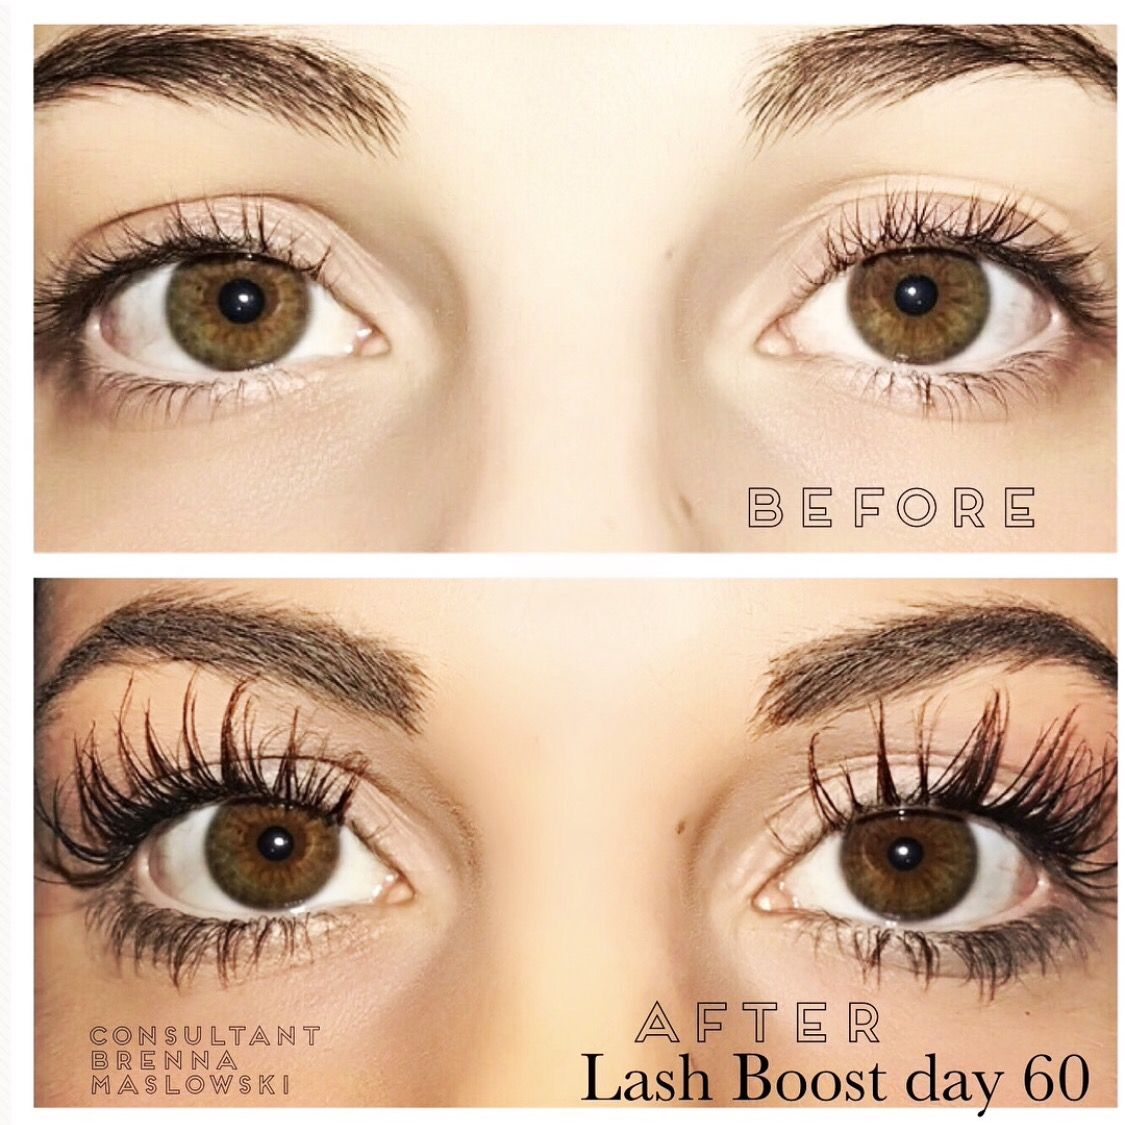 19f5e11cd26 Rodan + Fields Lash Boost BEFORE AND AFTER RESULTS | Sincerely, Me ...